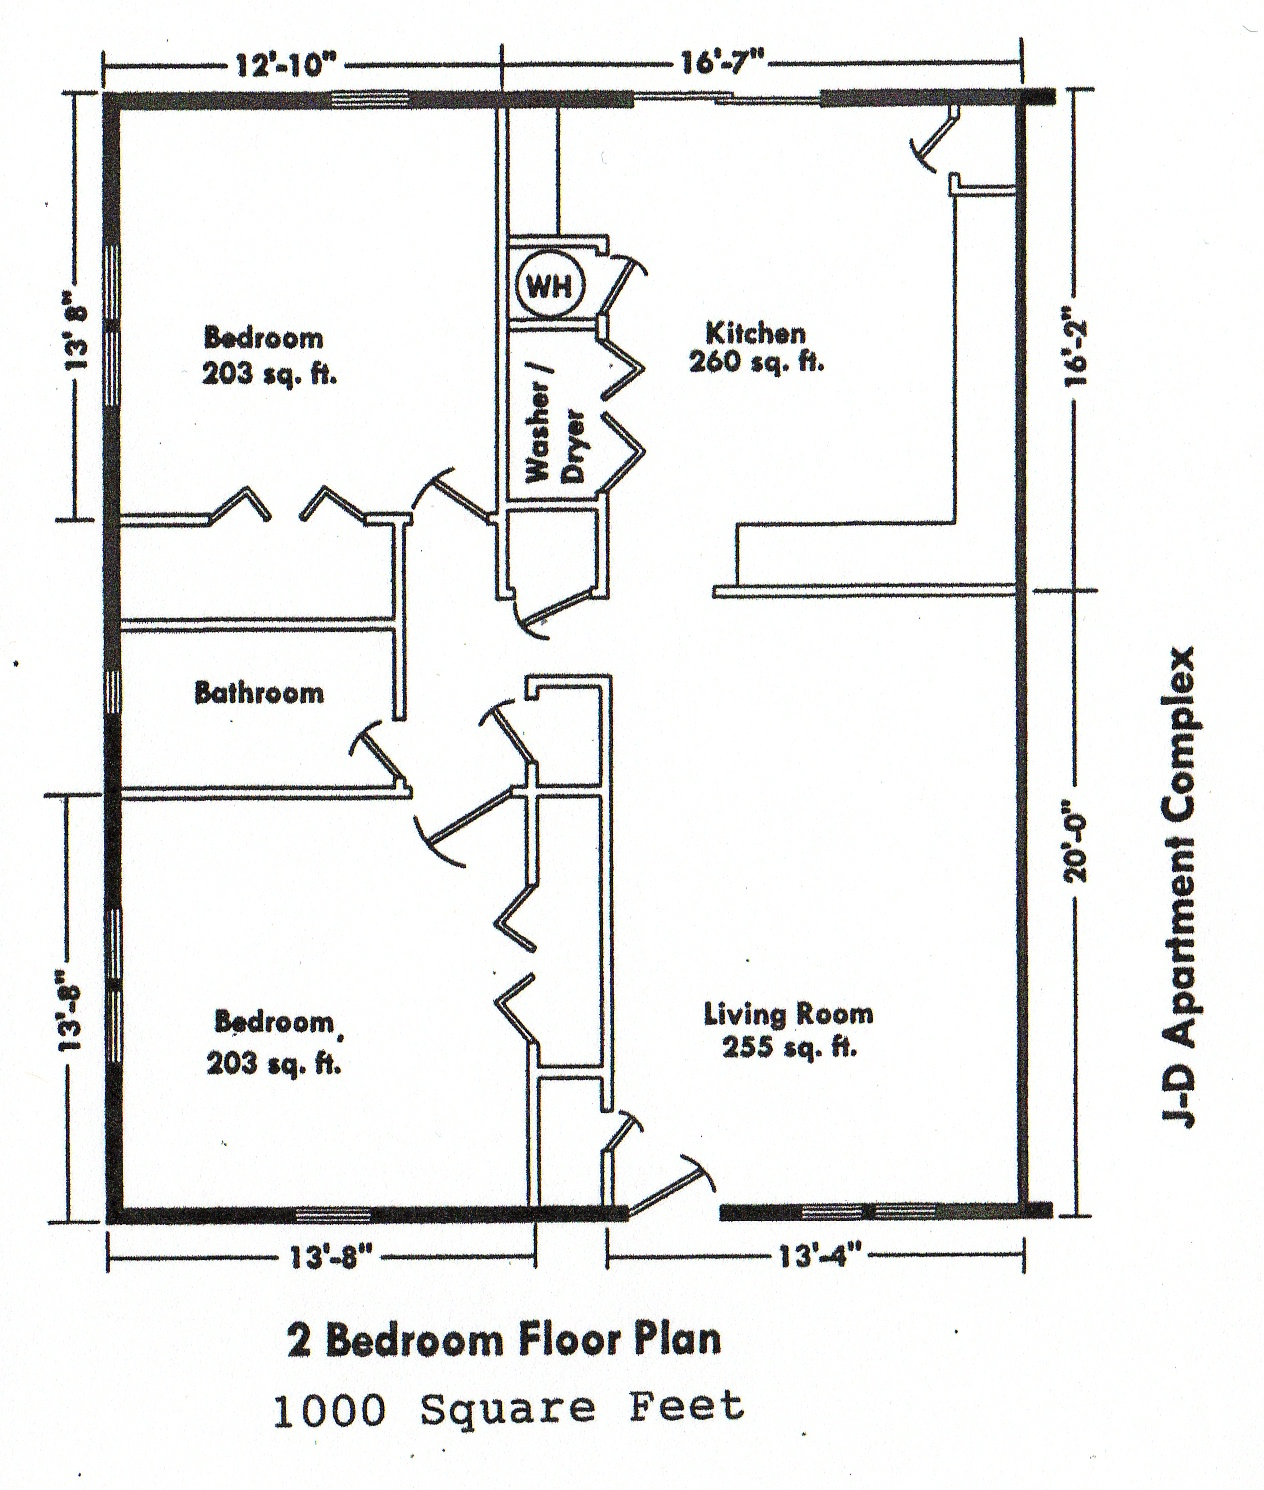 Modular home modular homes 2 bedroom floor plans - Bedroom home plan ...